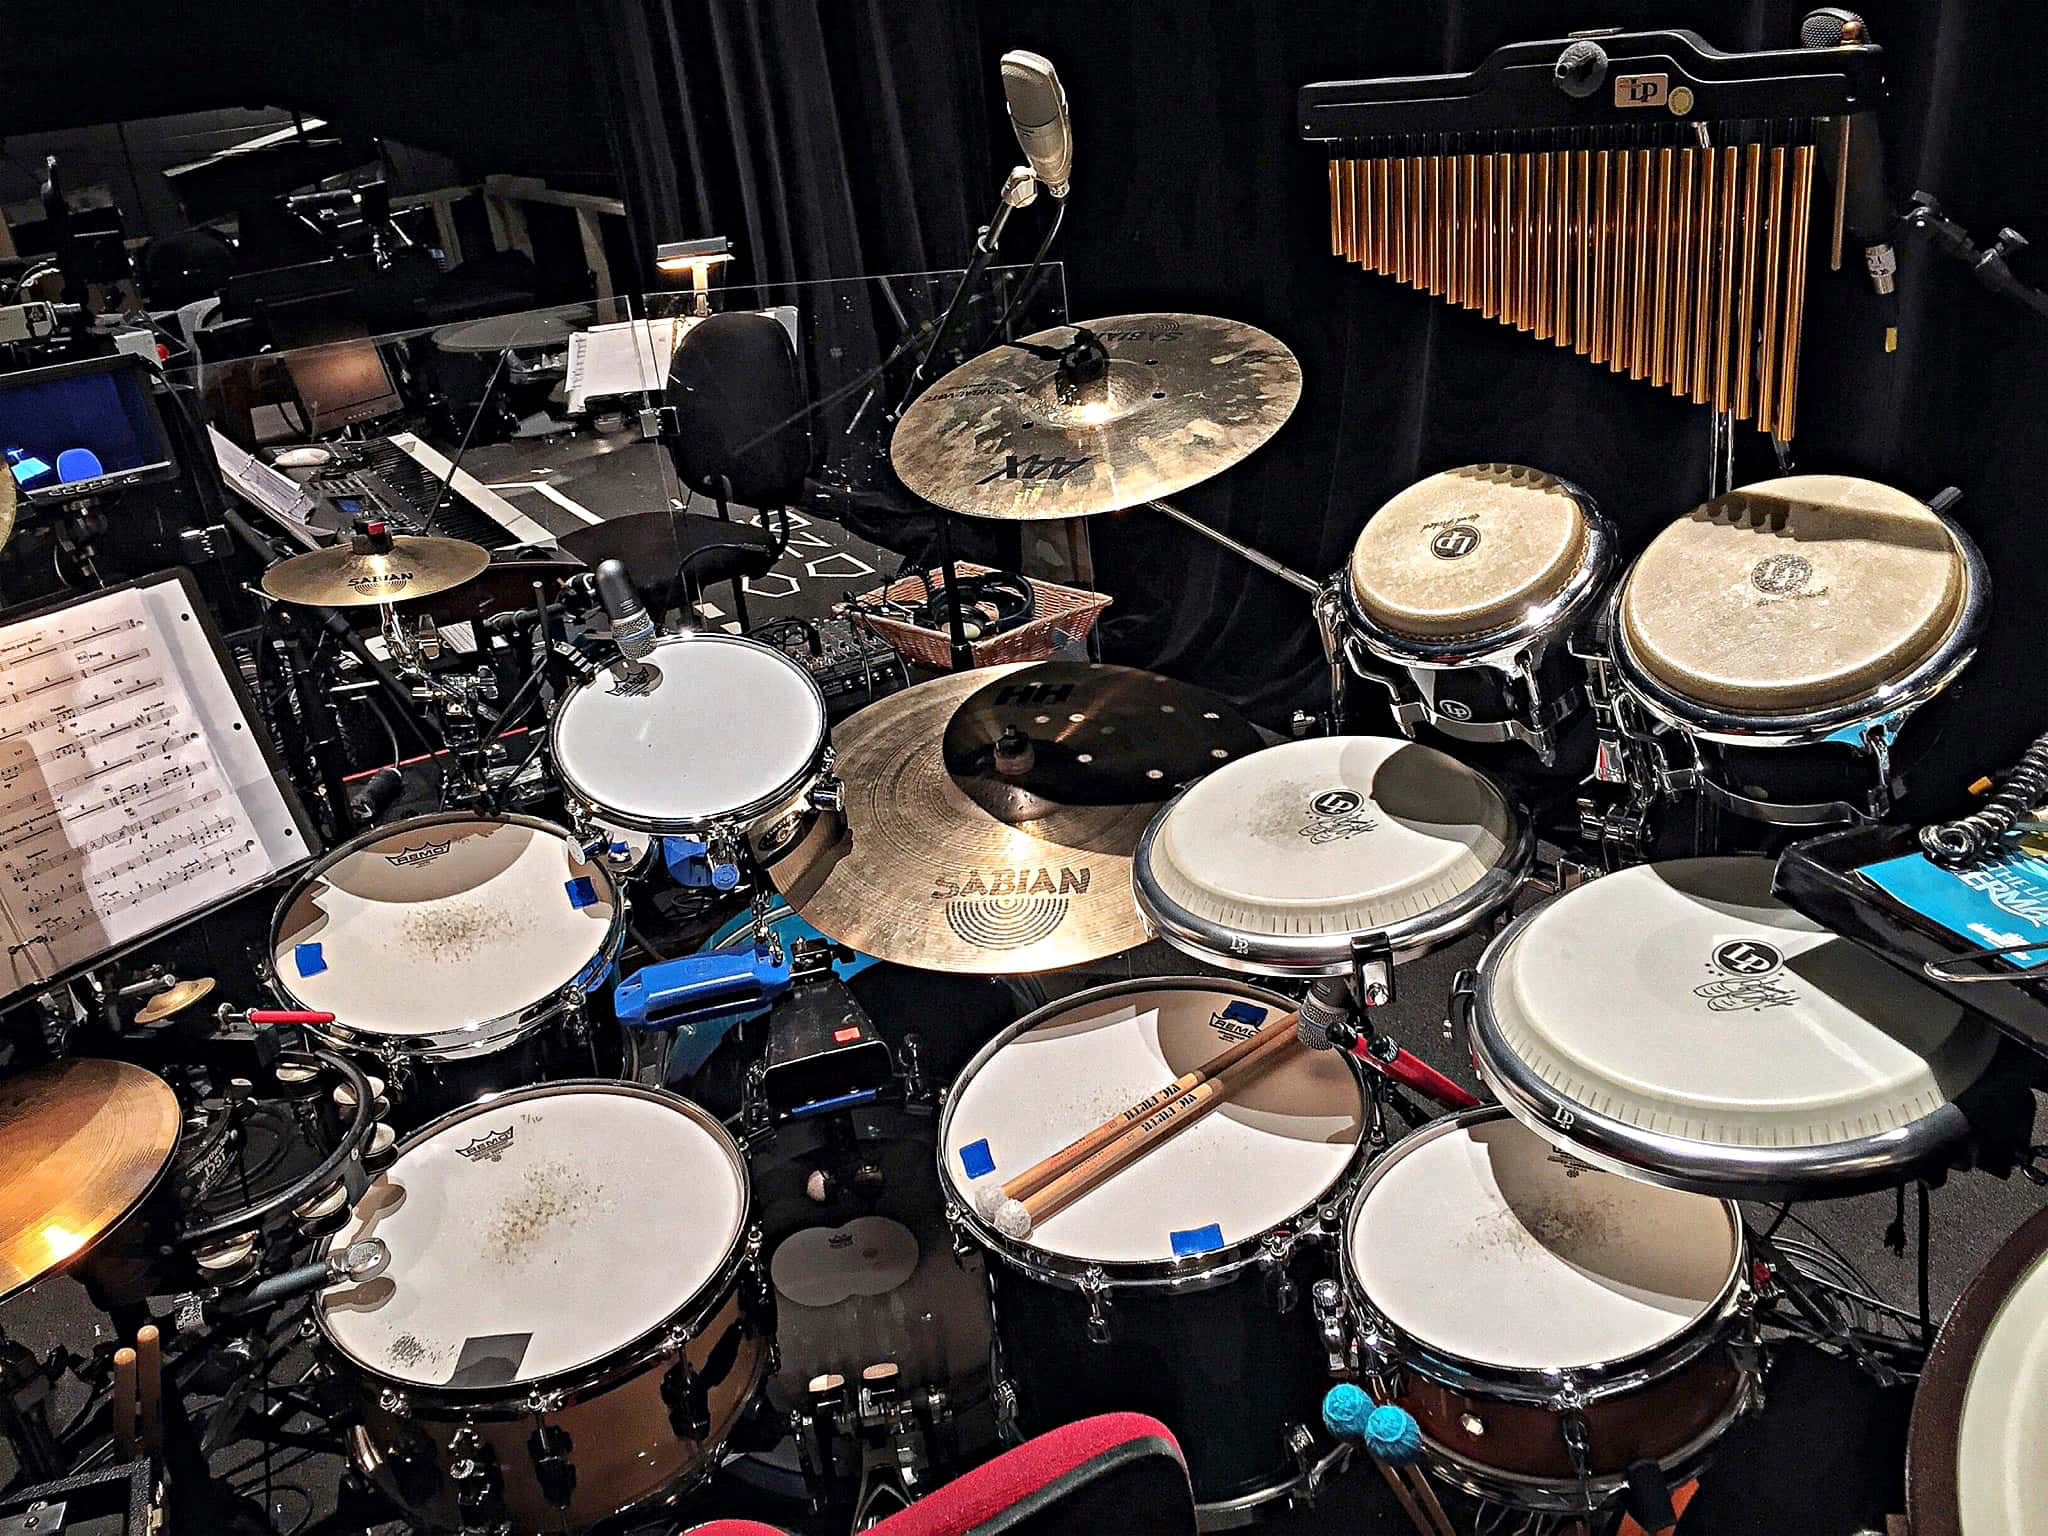 Ethan Deppe's setup for The Little Mermaid at the Chicago Shakespeare Theatre in Chicago, Illinois.